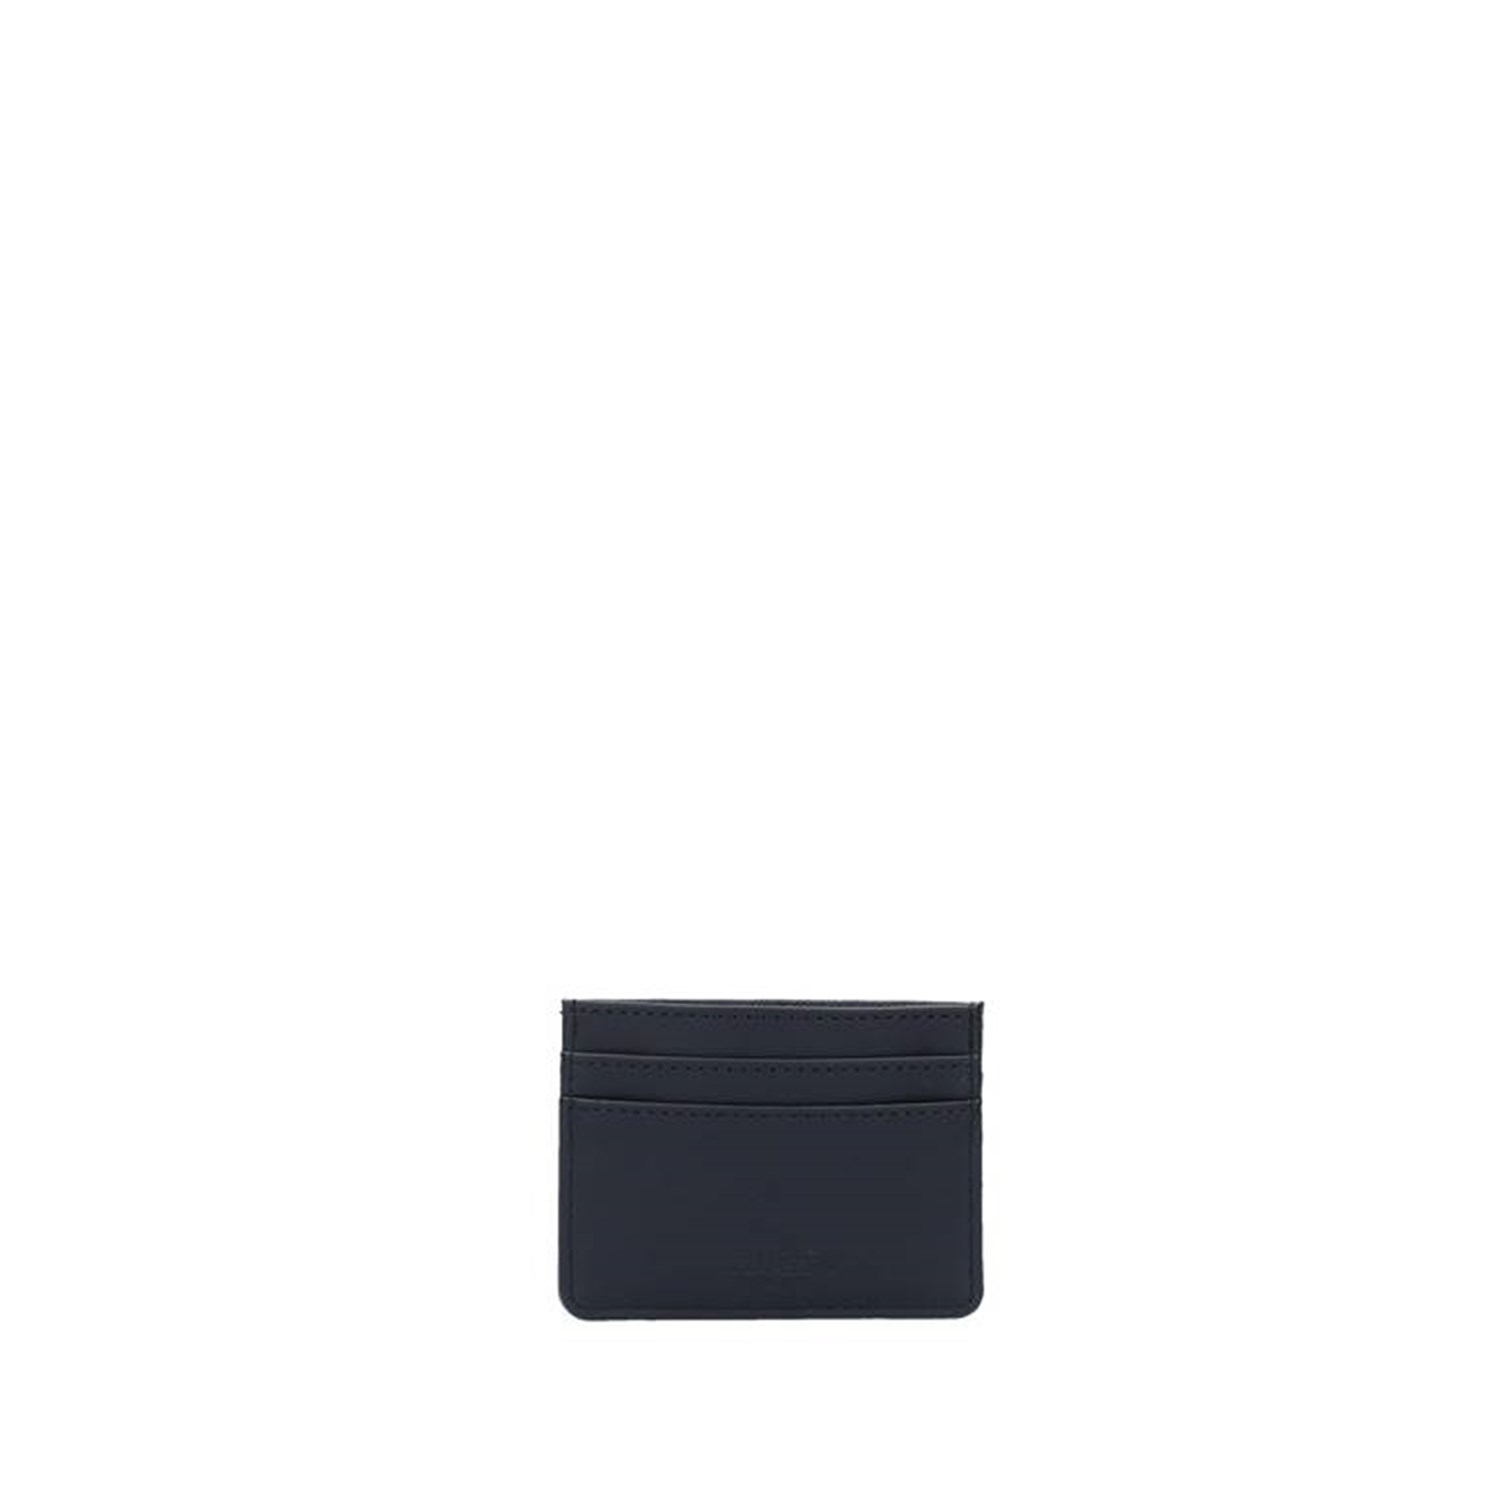 Fred Perry Accessories Accessories Wallets BLACK L3211